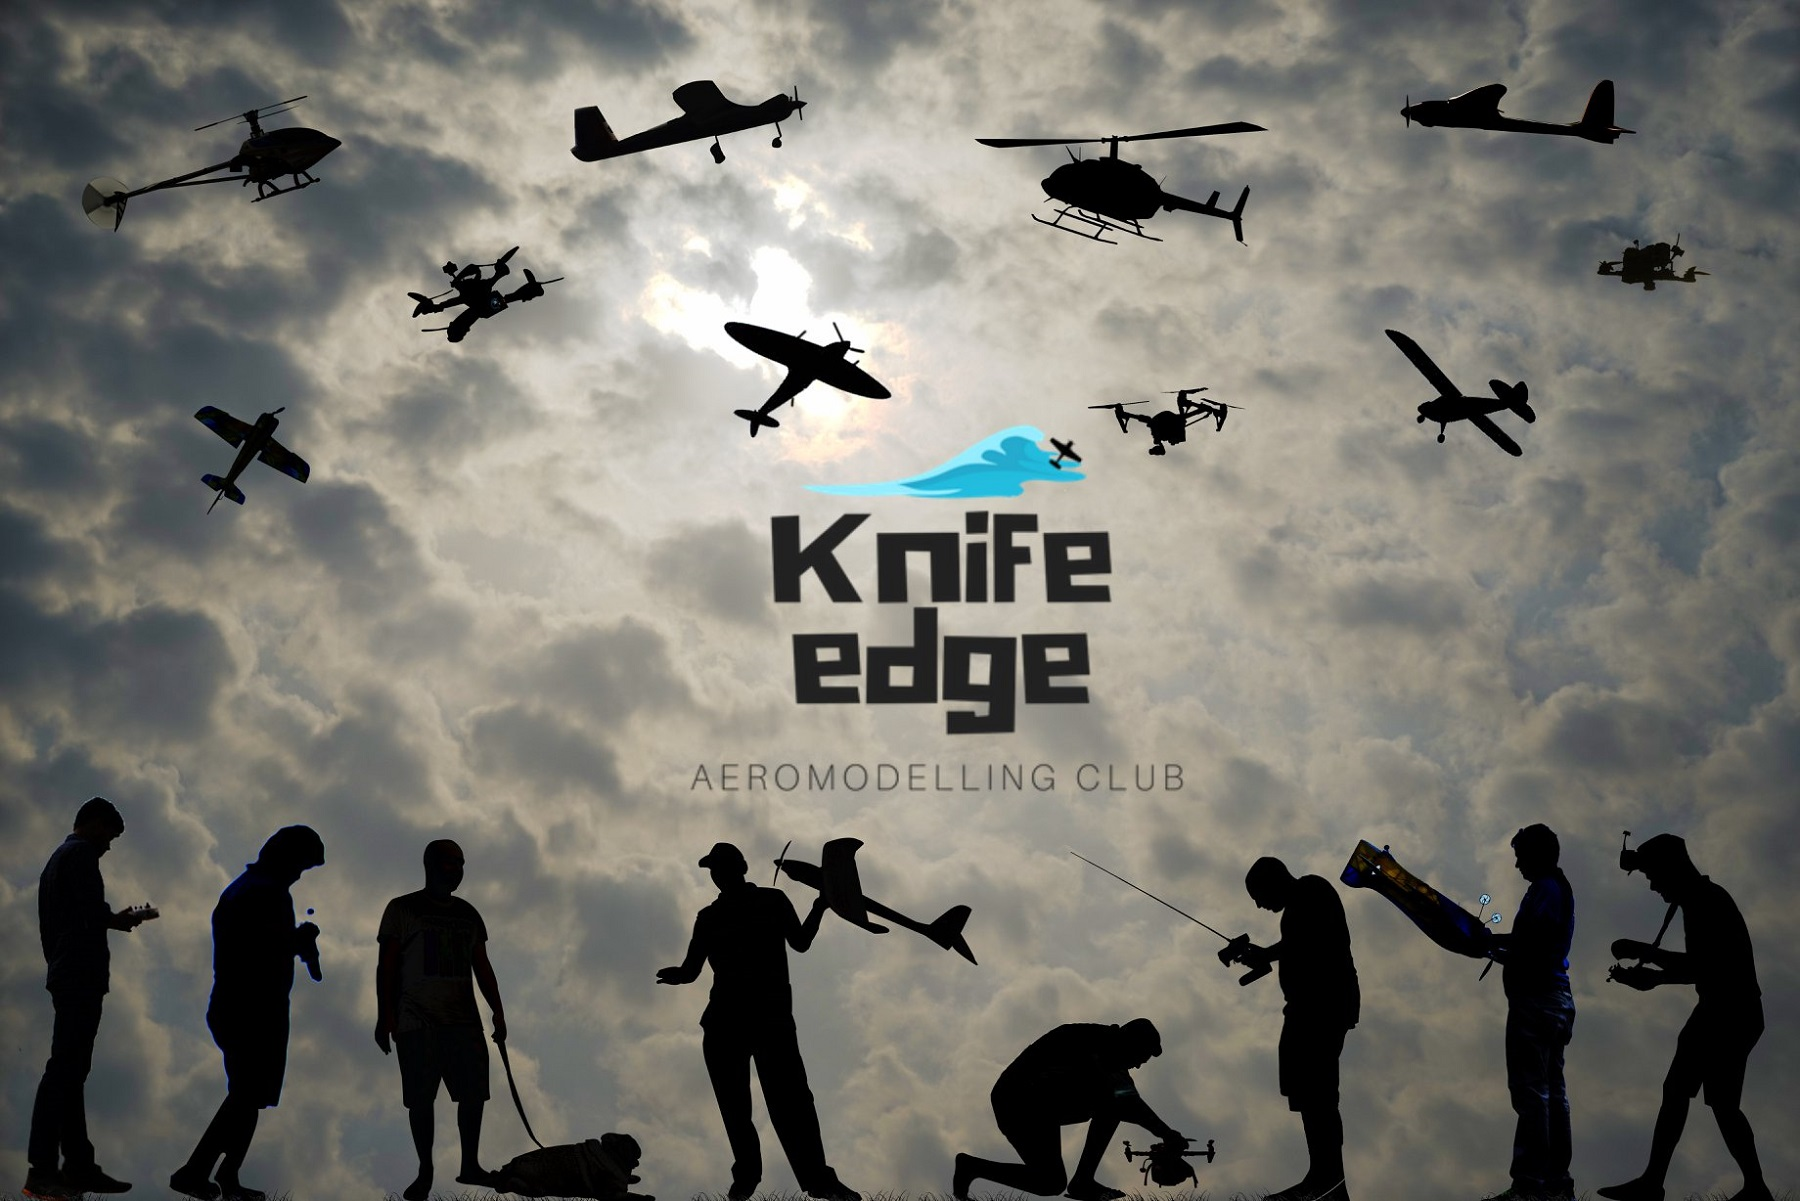 KnifeEDGE RC Aeromodelling club